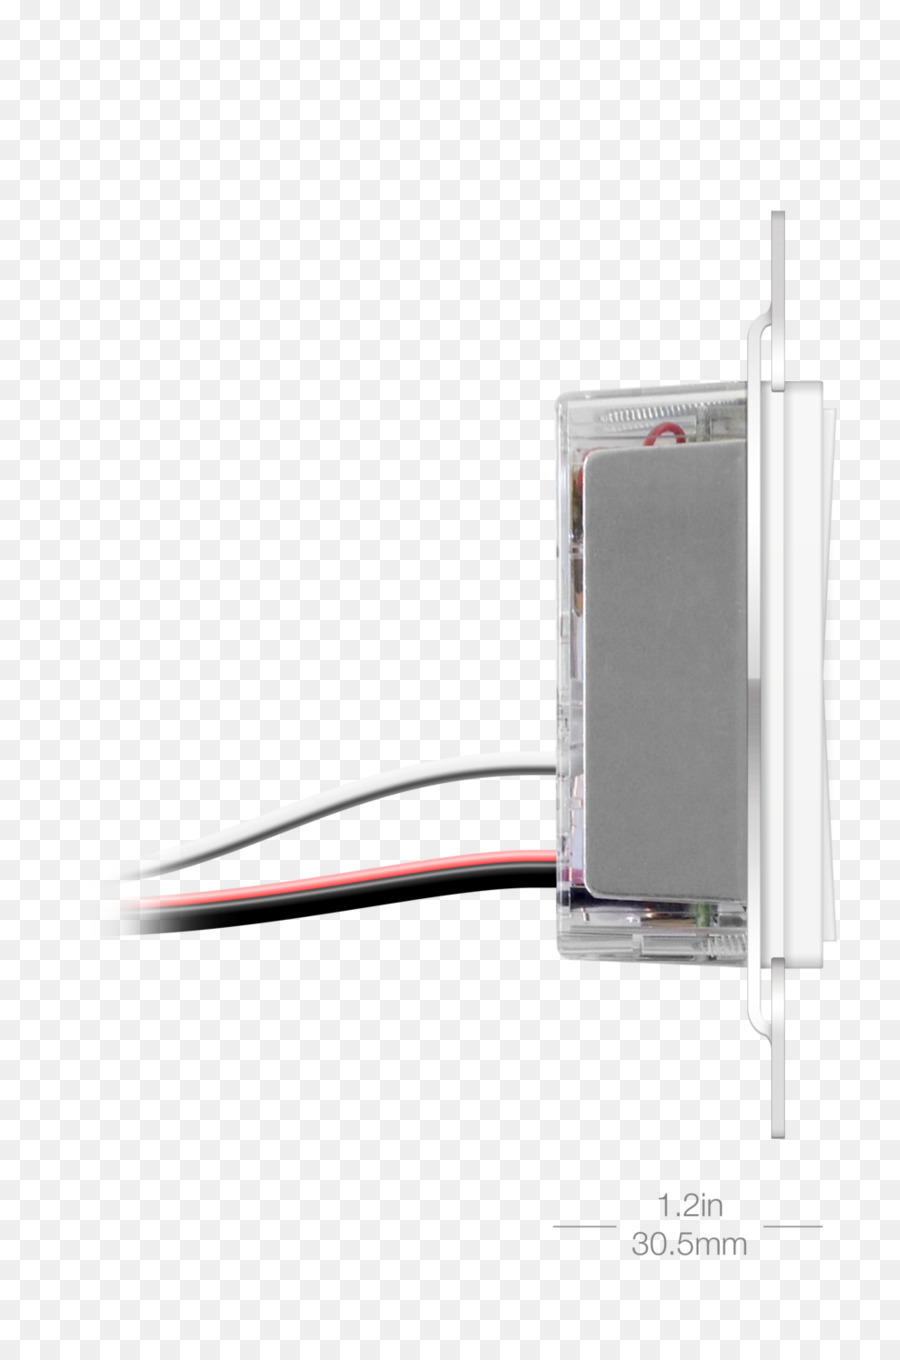 Dimmer Electrical Switches Latching Relay Wires Cable Circuit Wiring Diagram Others